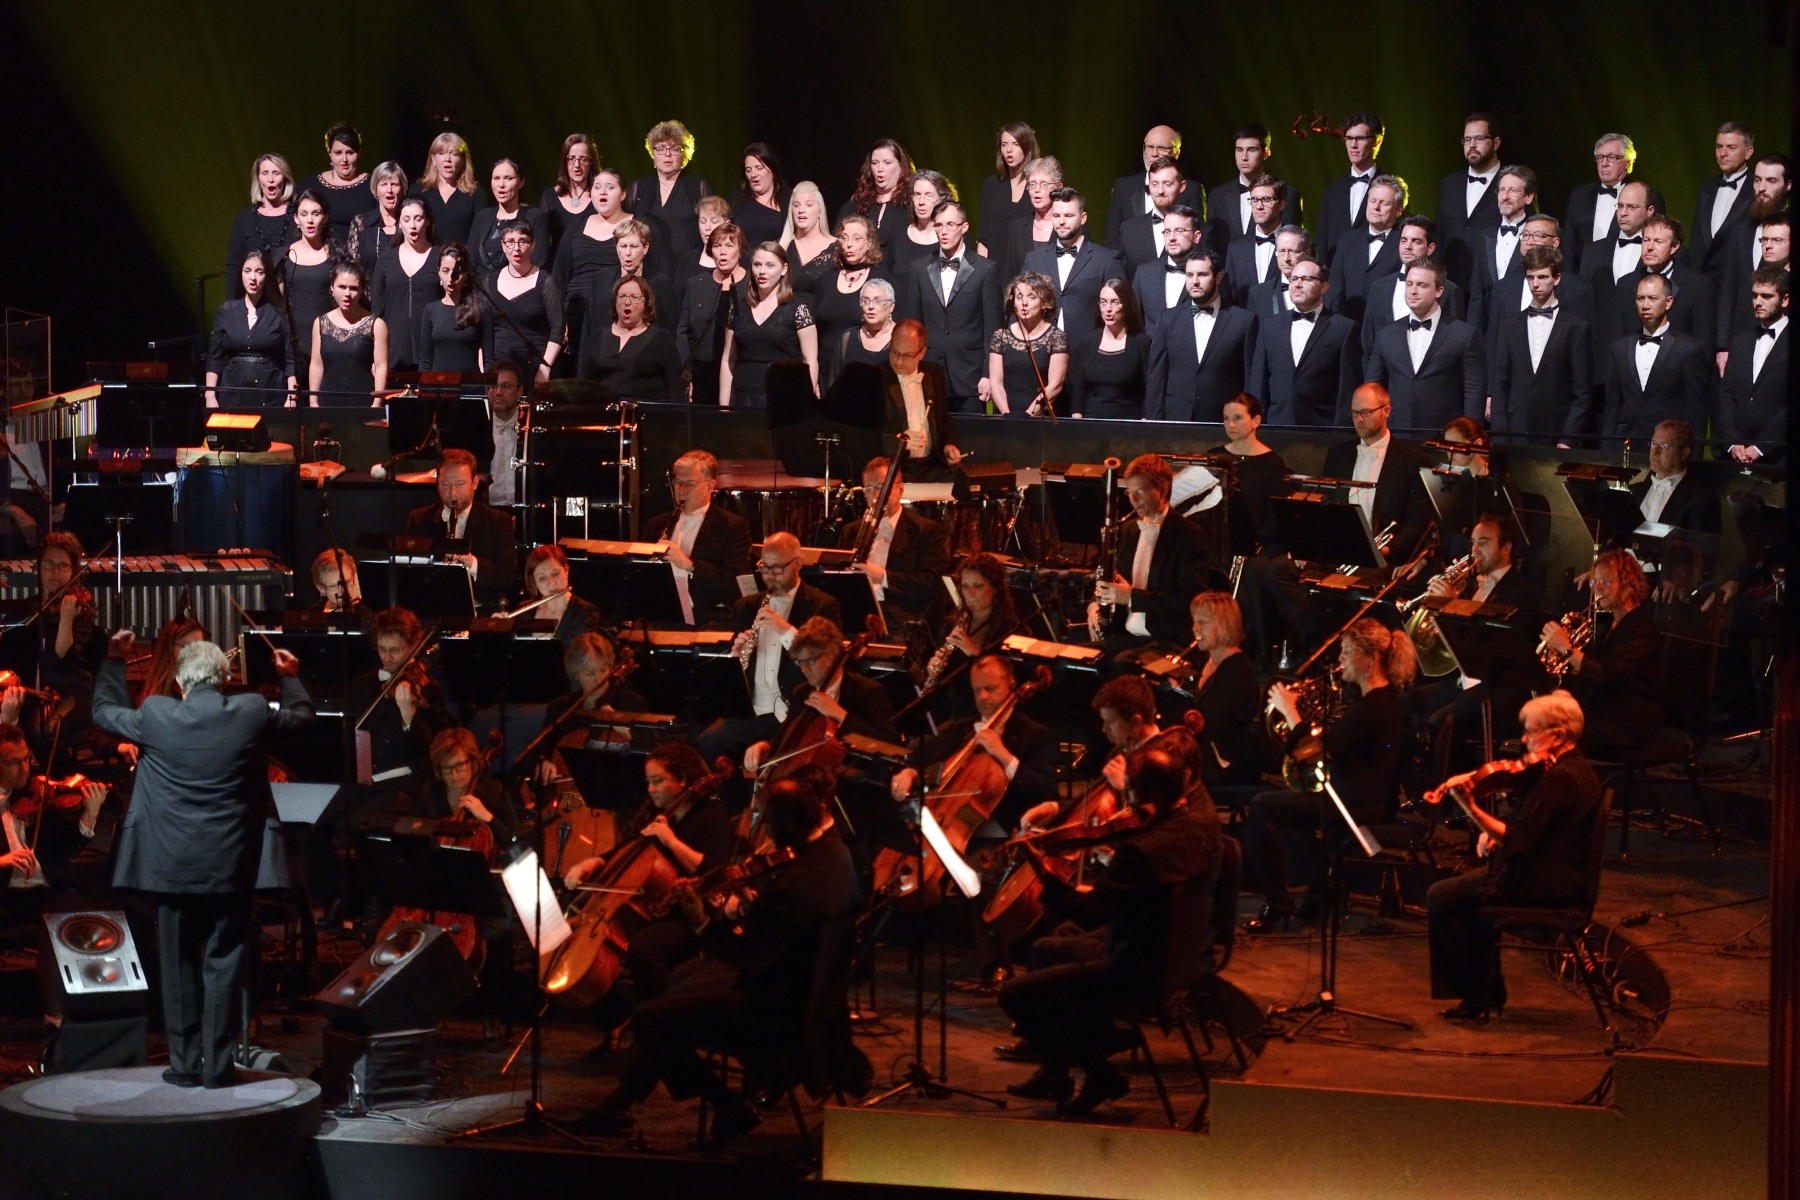 Ewashko Singers and the National Arts Centre Orchestra paid a musical tribute.